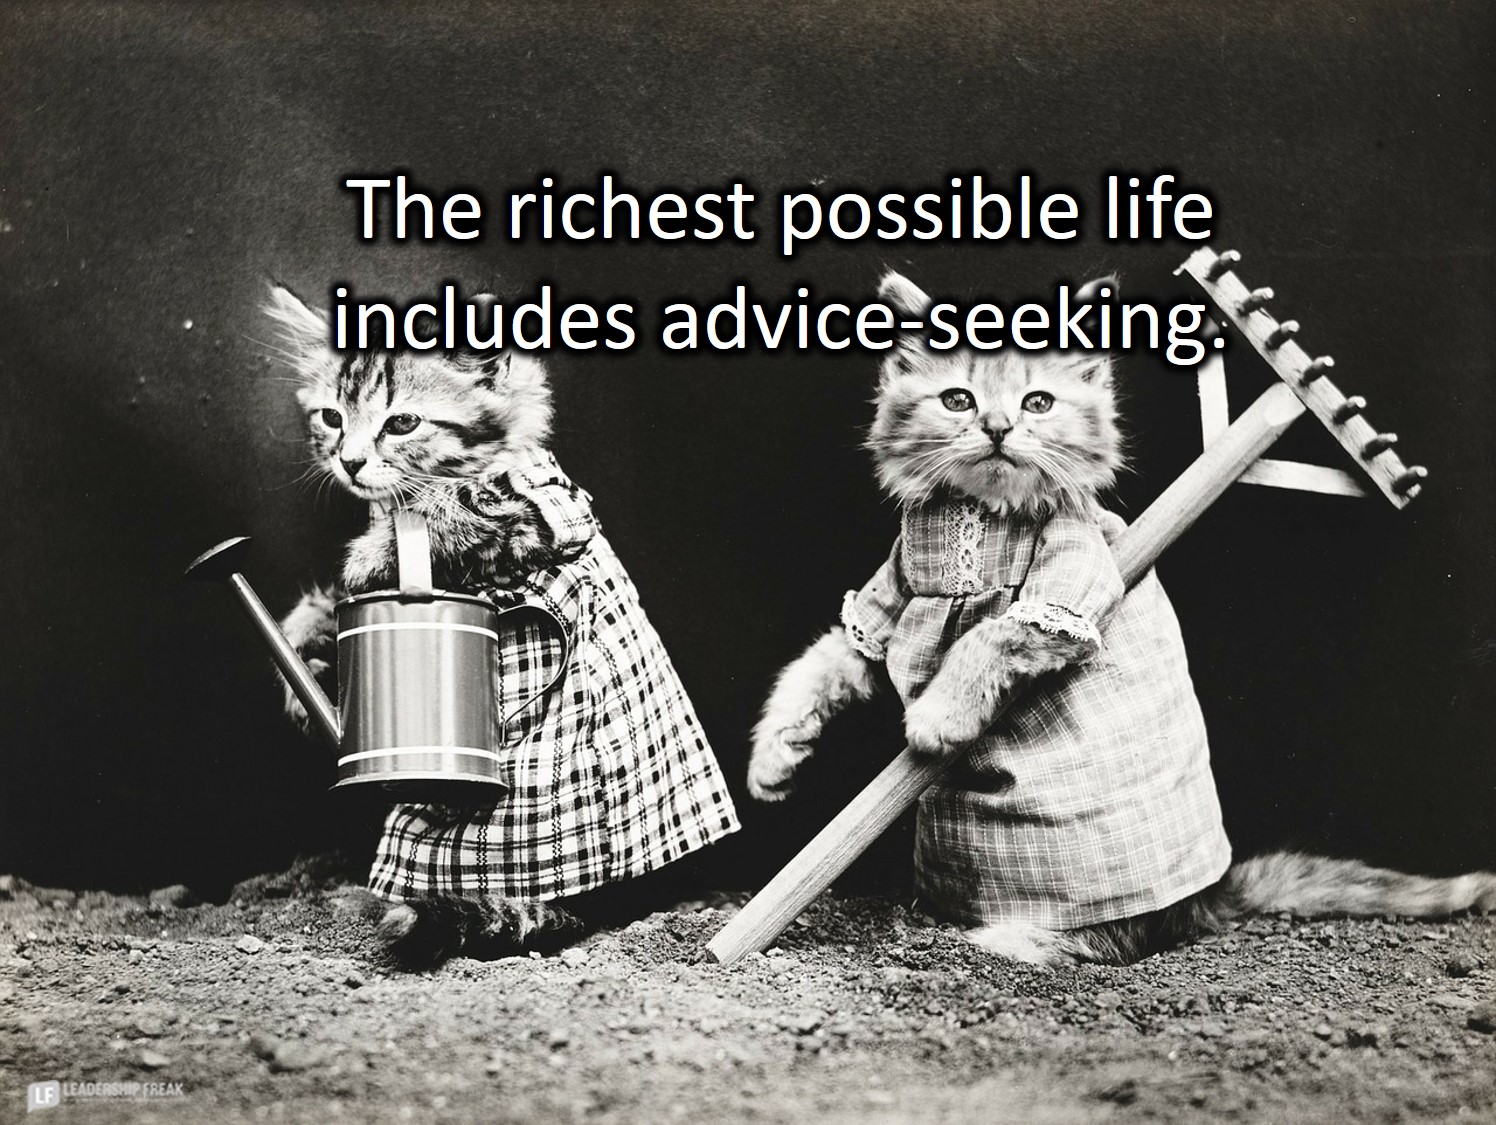 Cats gardening.  The richest possible life includes advice-seeking.